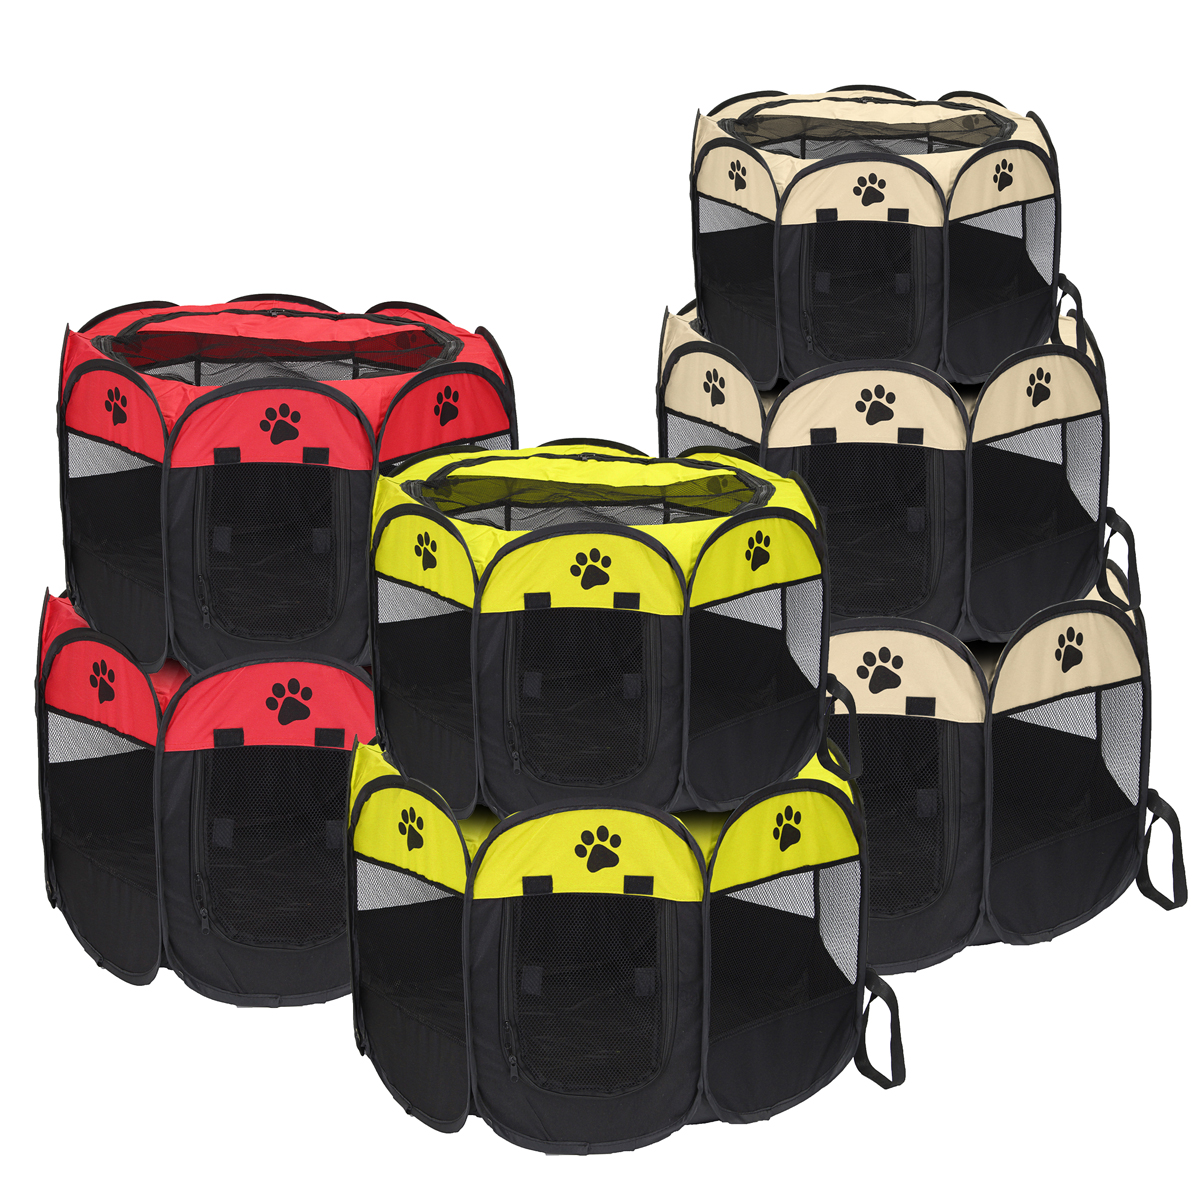 8 Panel Portable Puppy Dog Pet Cat Playpen Crate Cage Exercise Cage Pen Tent